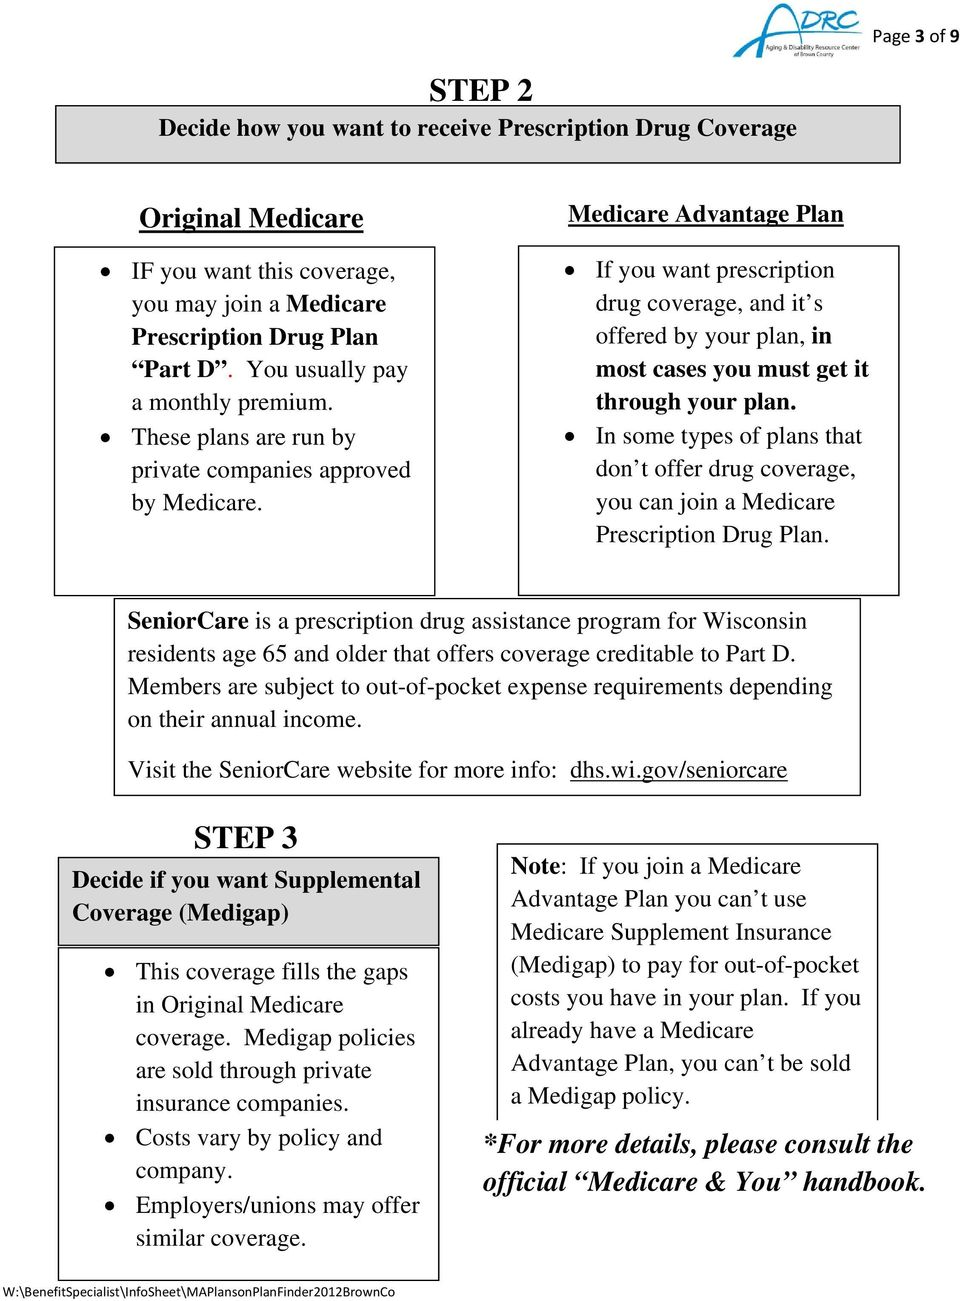 STEP 3 If you want prescription drug coverage, and it s offered by your plan, in most cases you must get it through your plan.